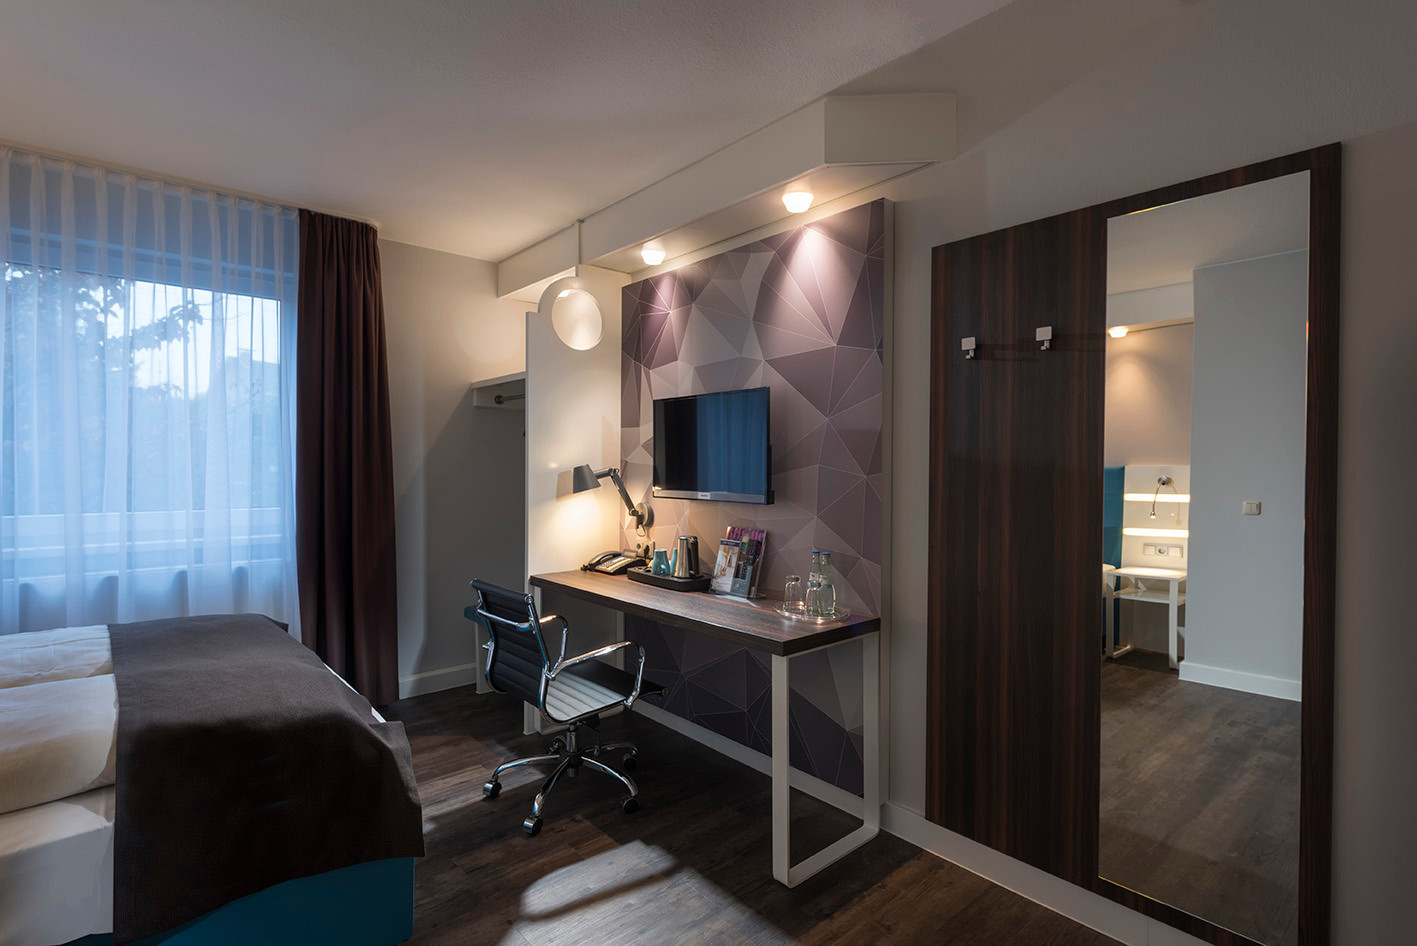 4 Star Hotel Cologne Best Western Hotel Cologne Airport